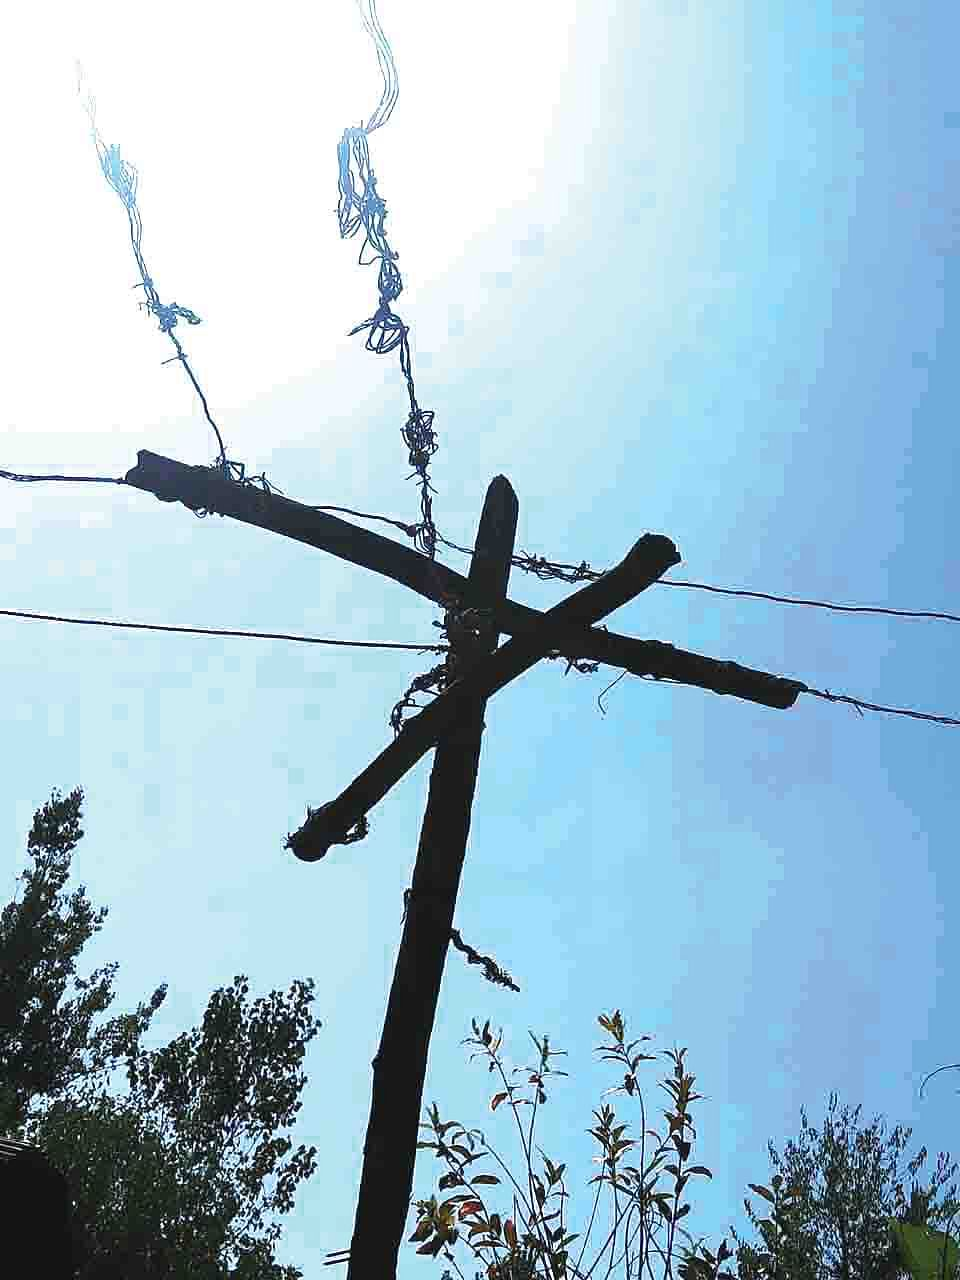 Live electric wires on wooden poles, trees pose danger